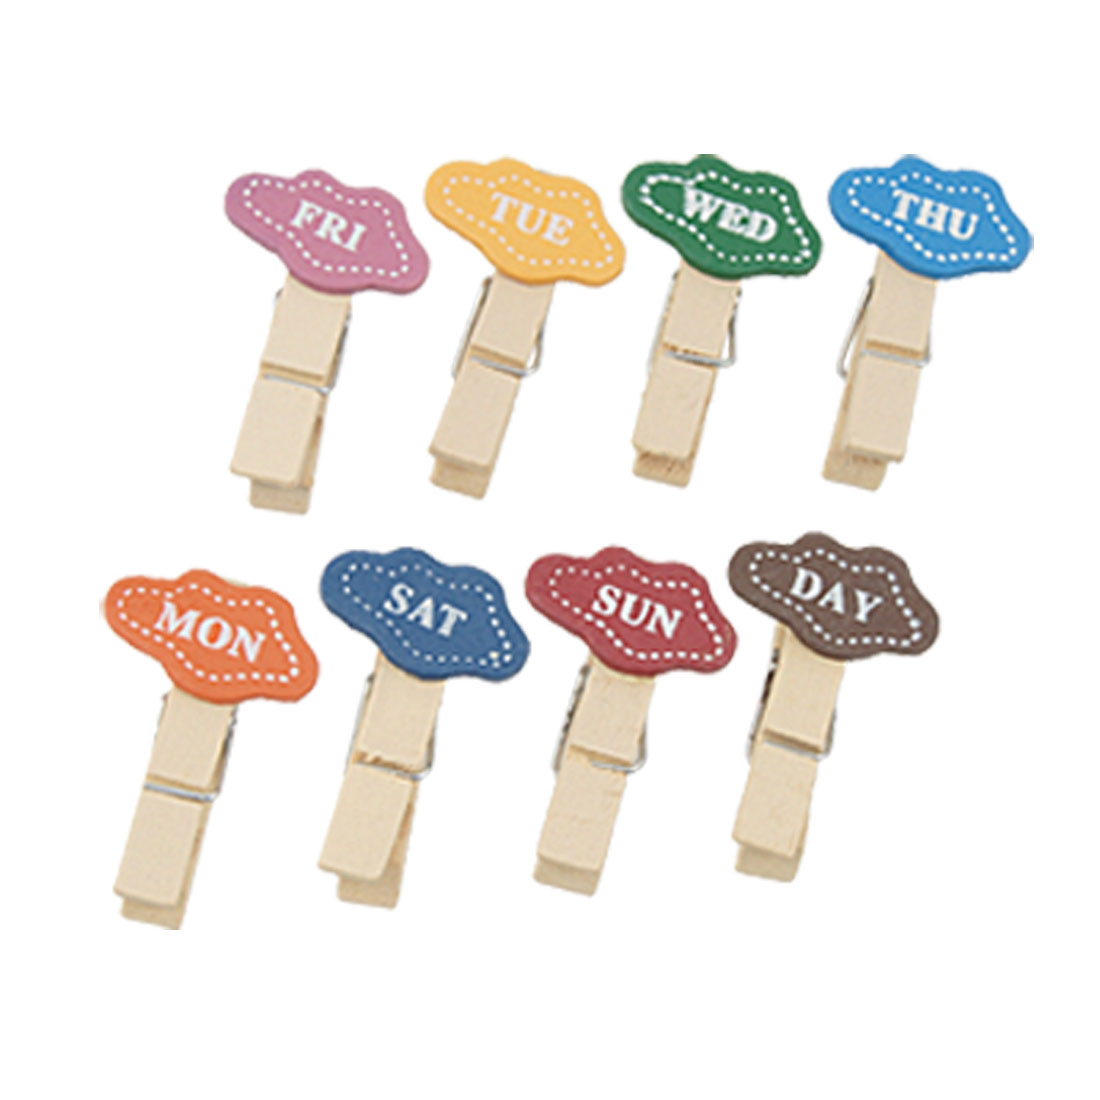 8 Pcs Household Wooden Nonslip Multipurpose Clothing Clothespins Clips